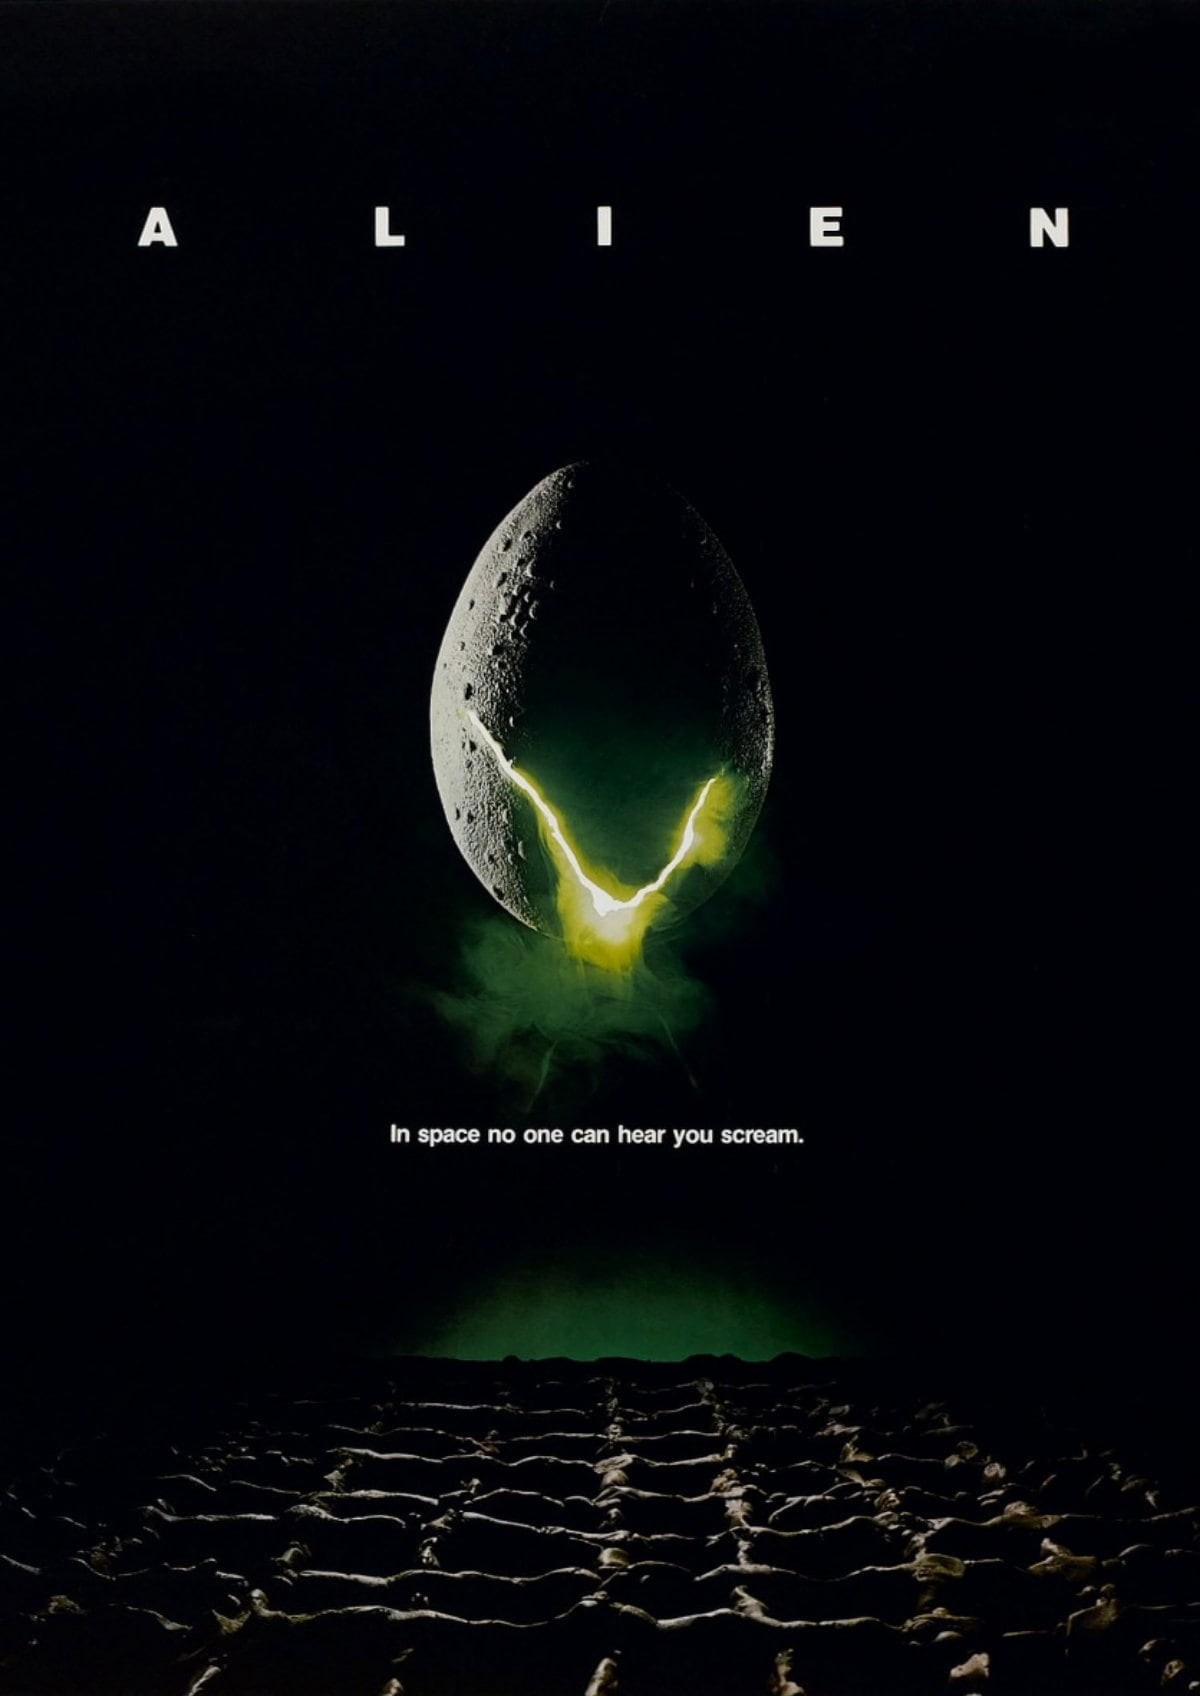 'Alien' movie poster